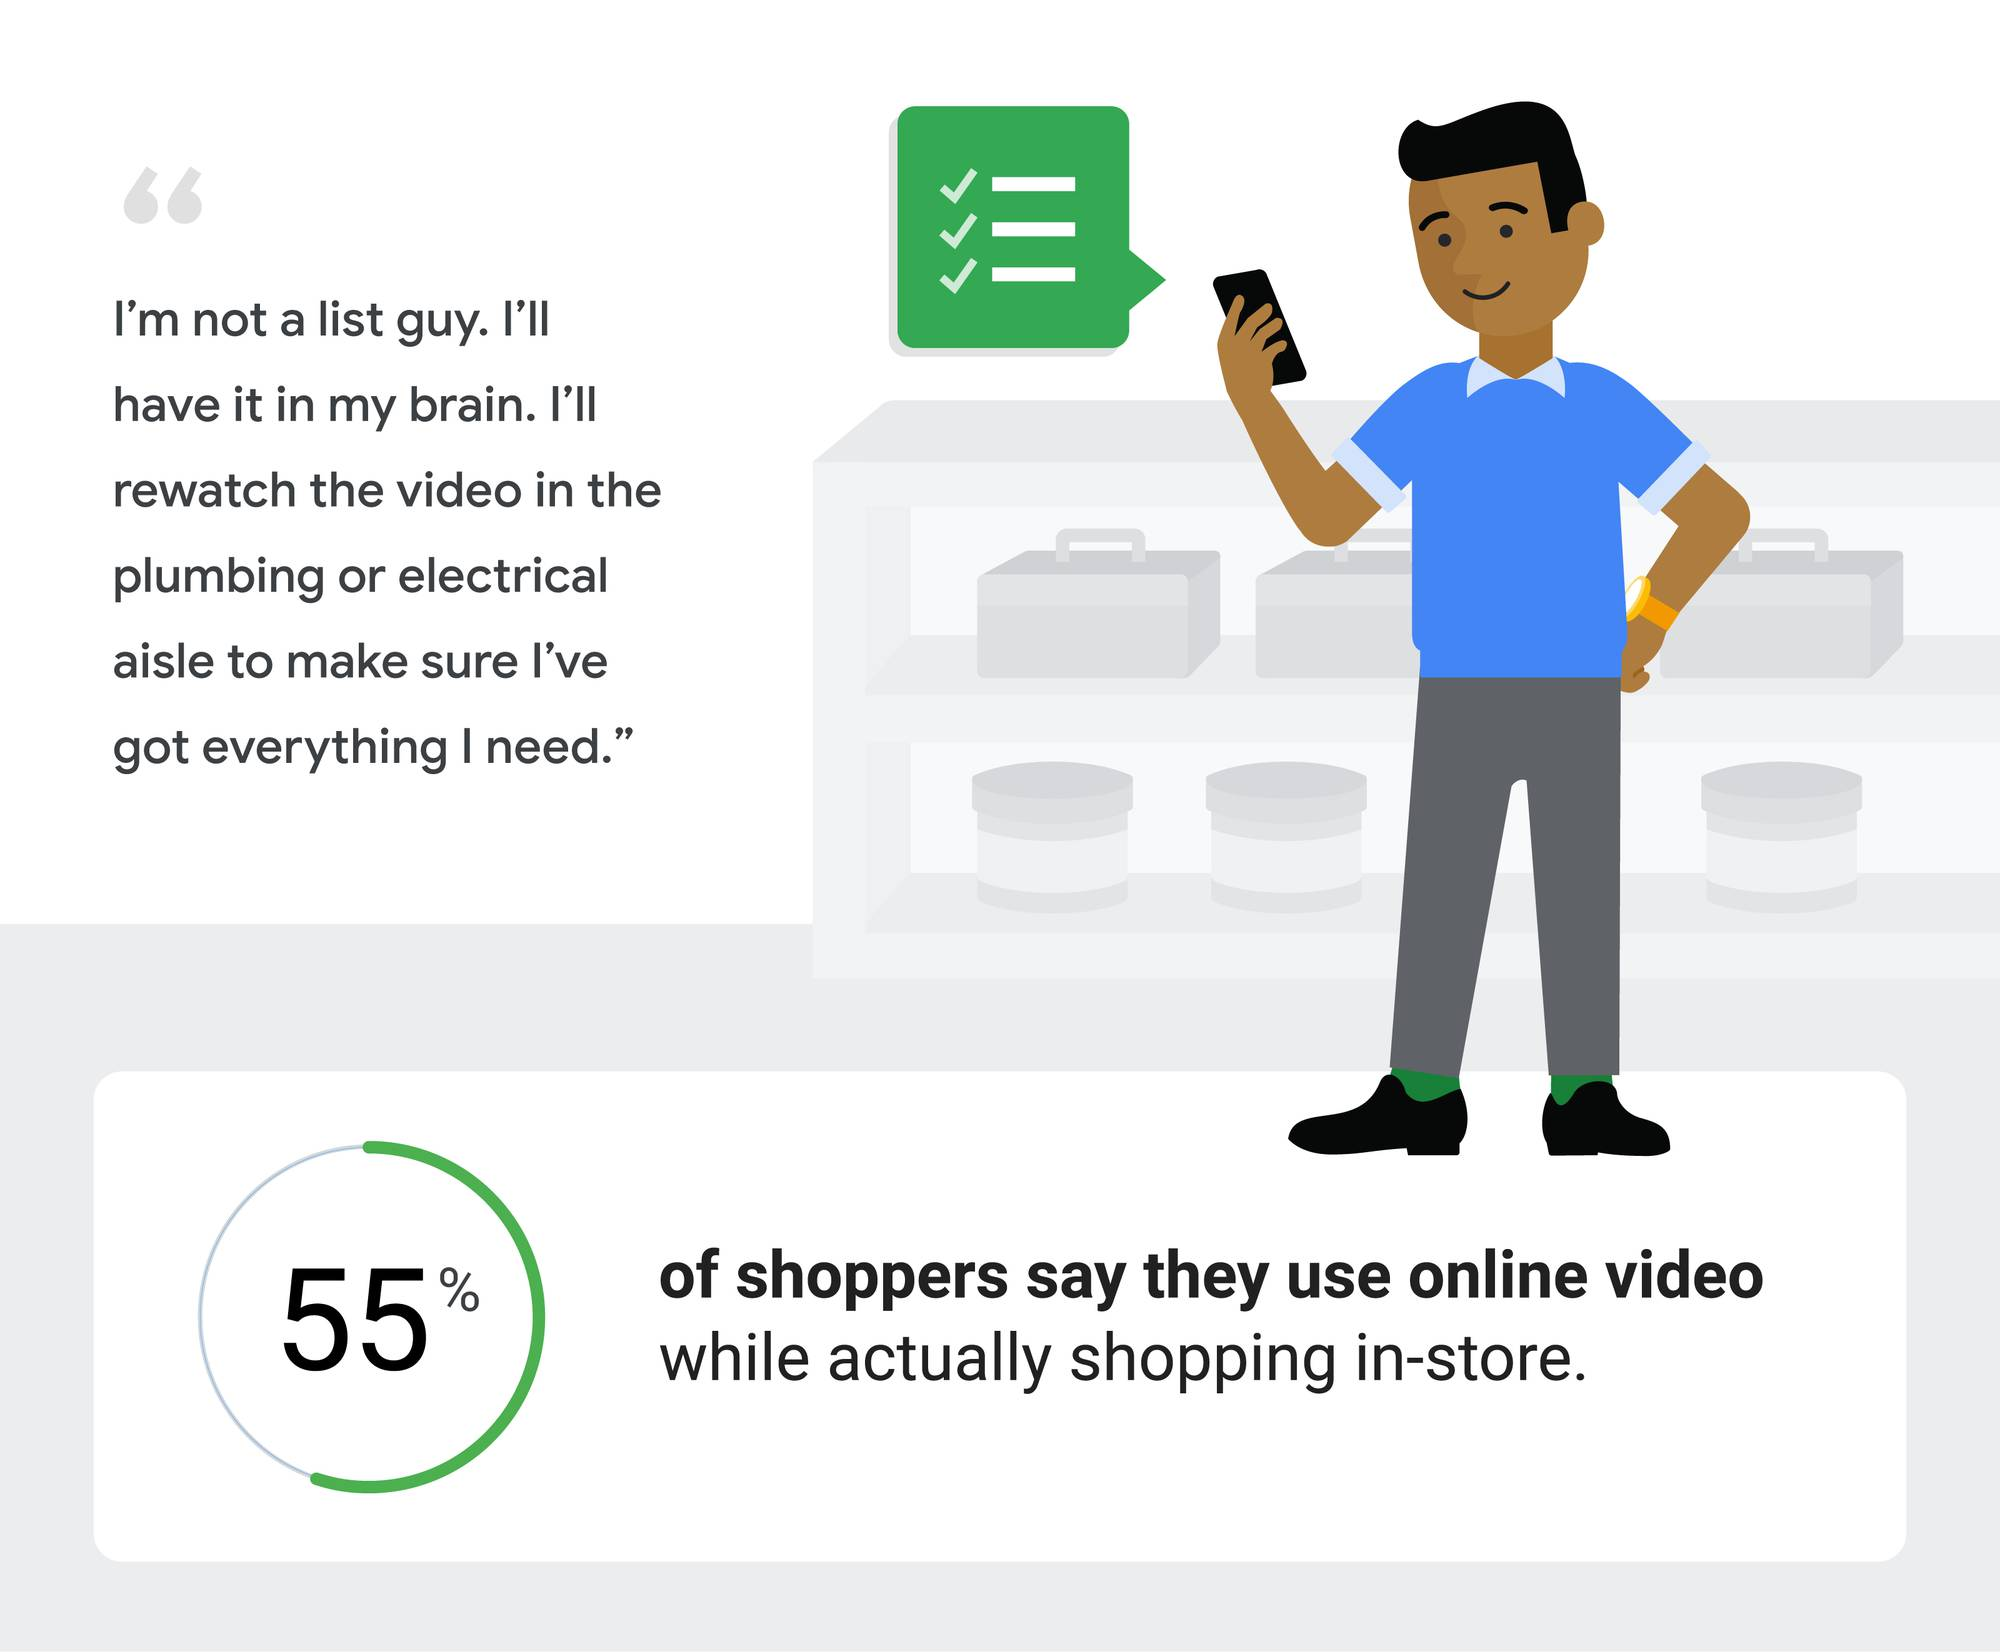 """A man looks at a list on his phone. """"I'm not a list guy. I have it in my brain. I'll watch the video in the plumbing or electrical aisle to make sure I've got everything I need."""" 55% of shoppers say they use online video while actually shopping in-store."""